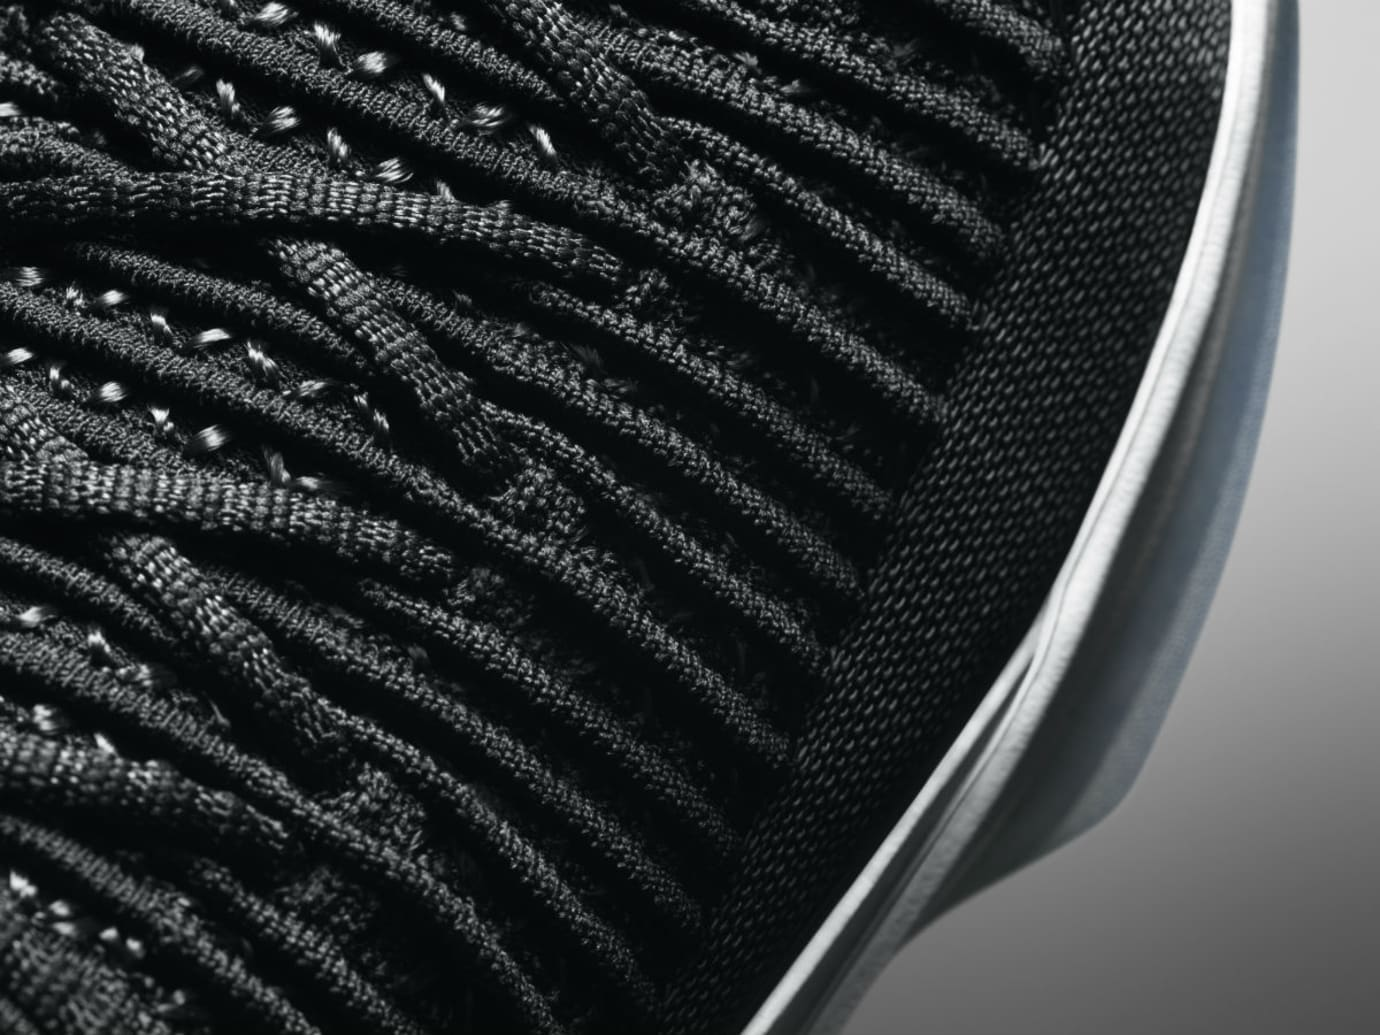 07c8a2c41c8a23 Air Jordan 32 Low Free Throw Line Release Date AA1256-002 Flyknit